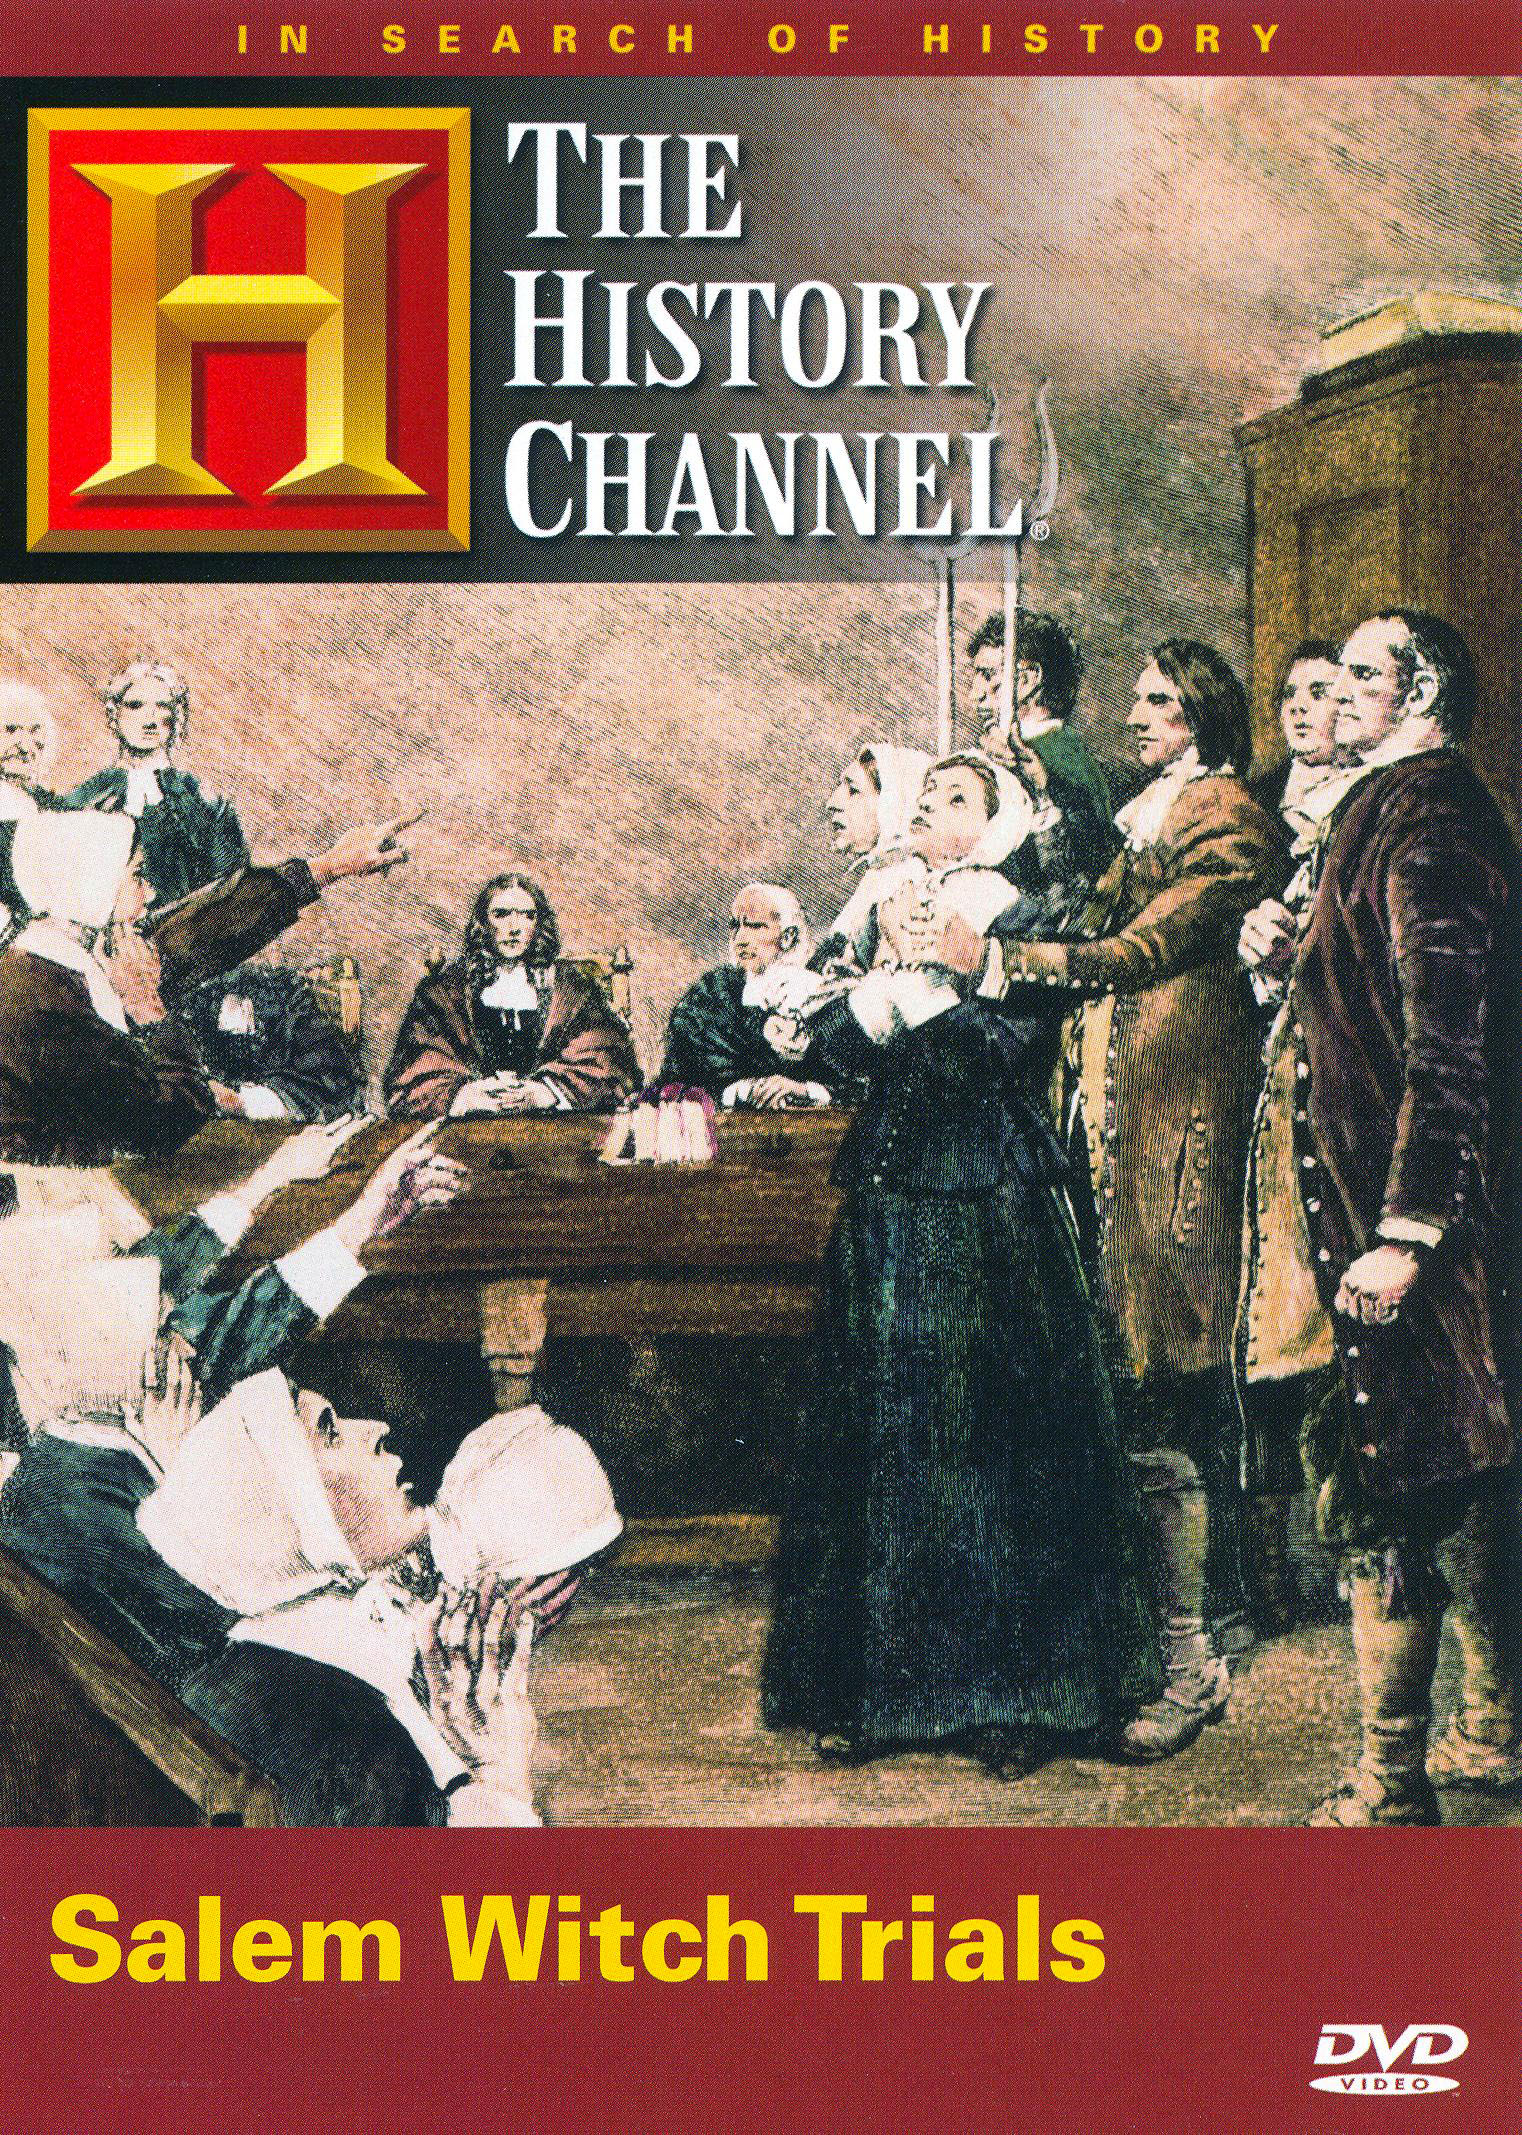 salem witch trial term papers Salem witch trials term papers available at planet salem witchcraft trials research paper salem witchcraft g college admission essay here to cancel must be.